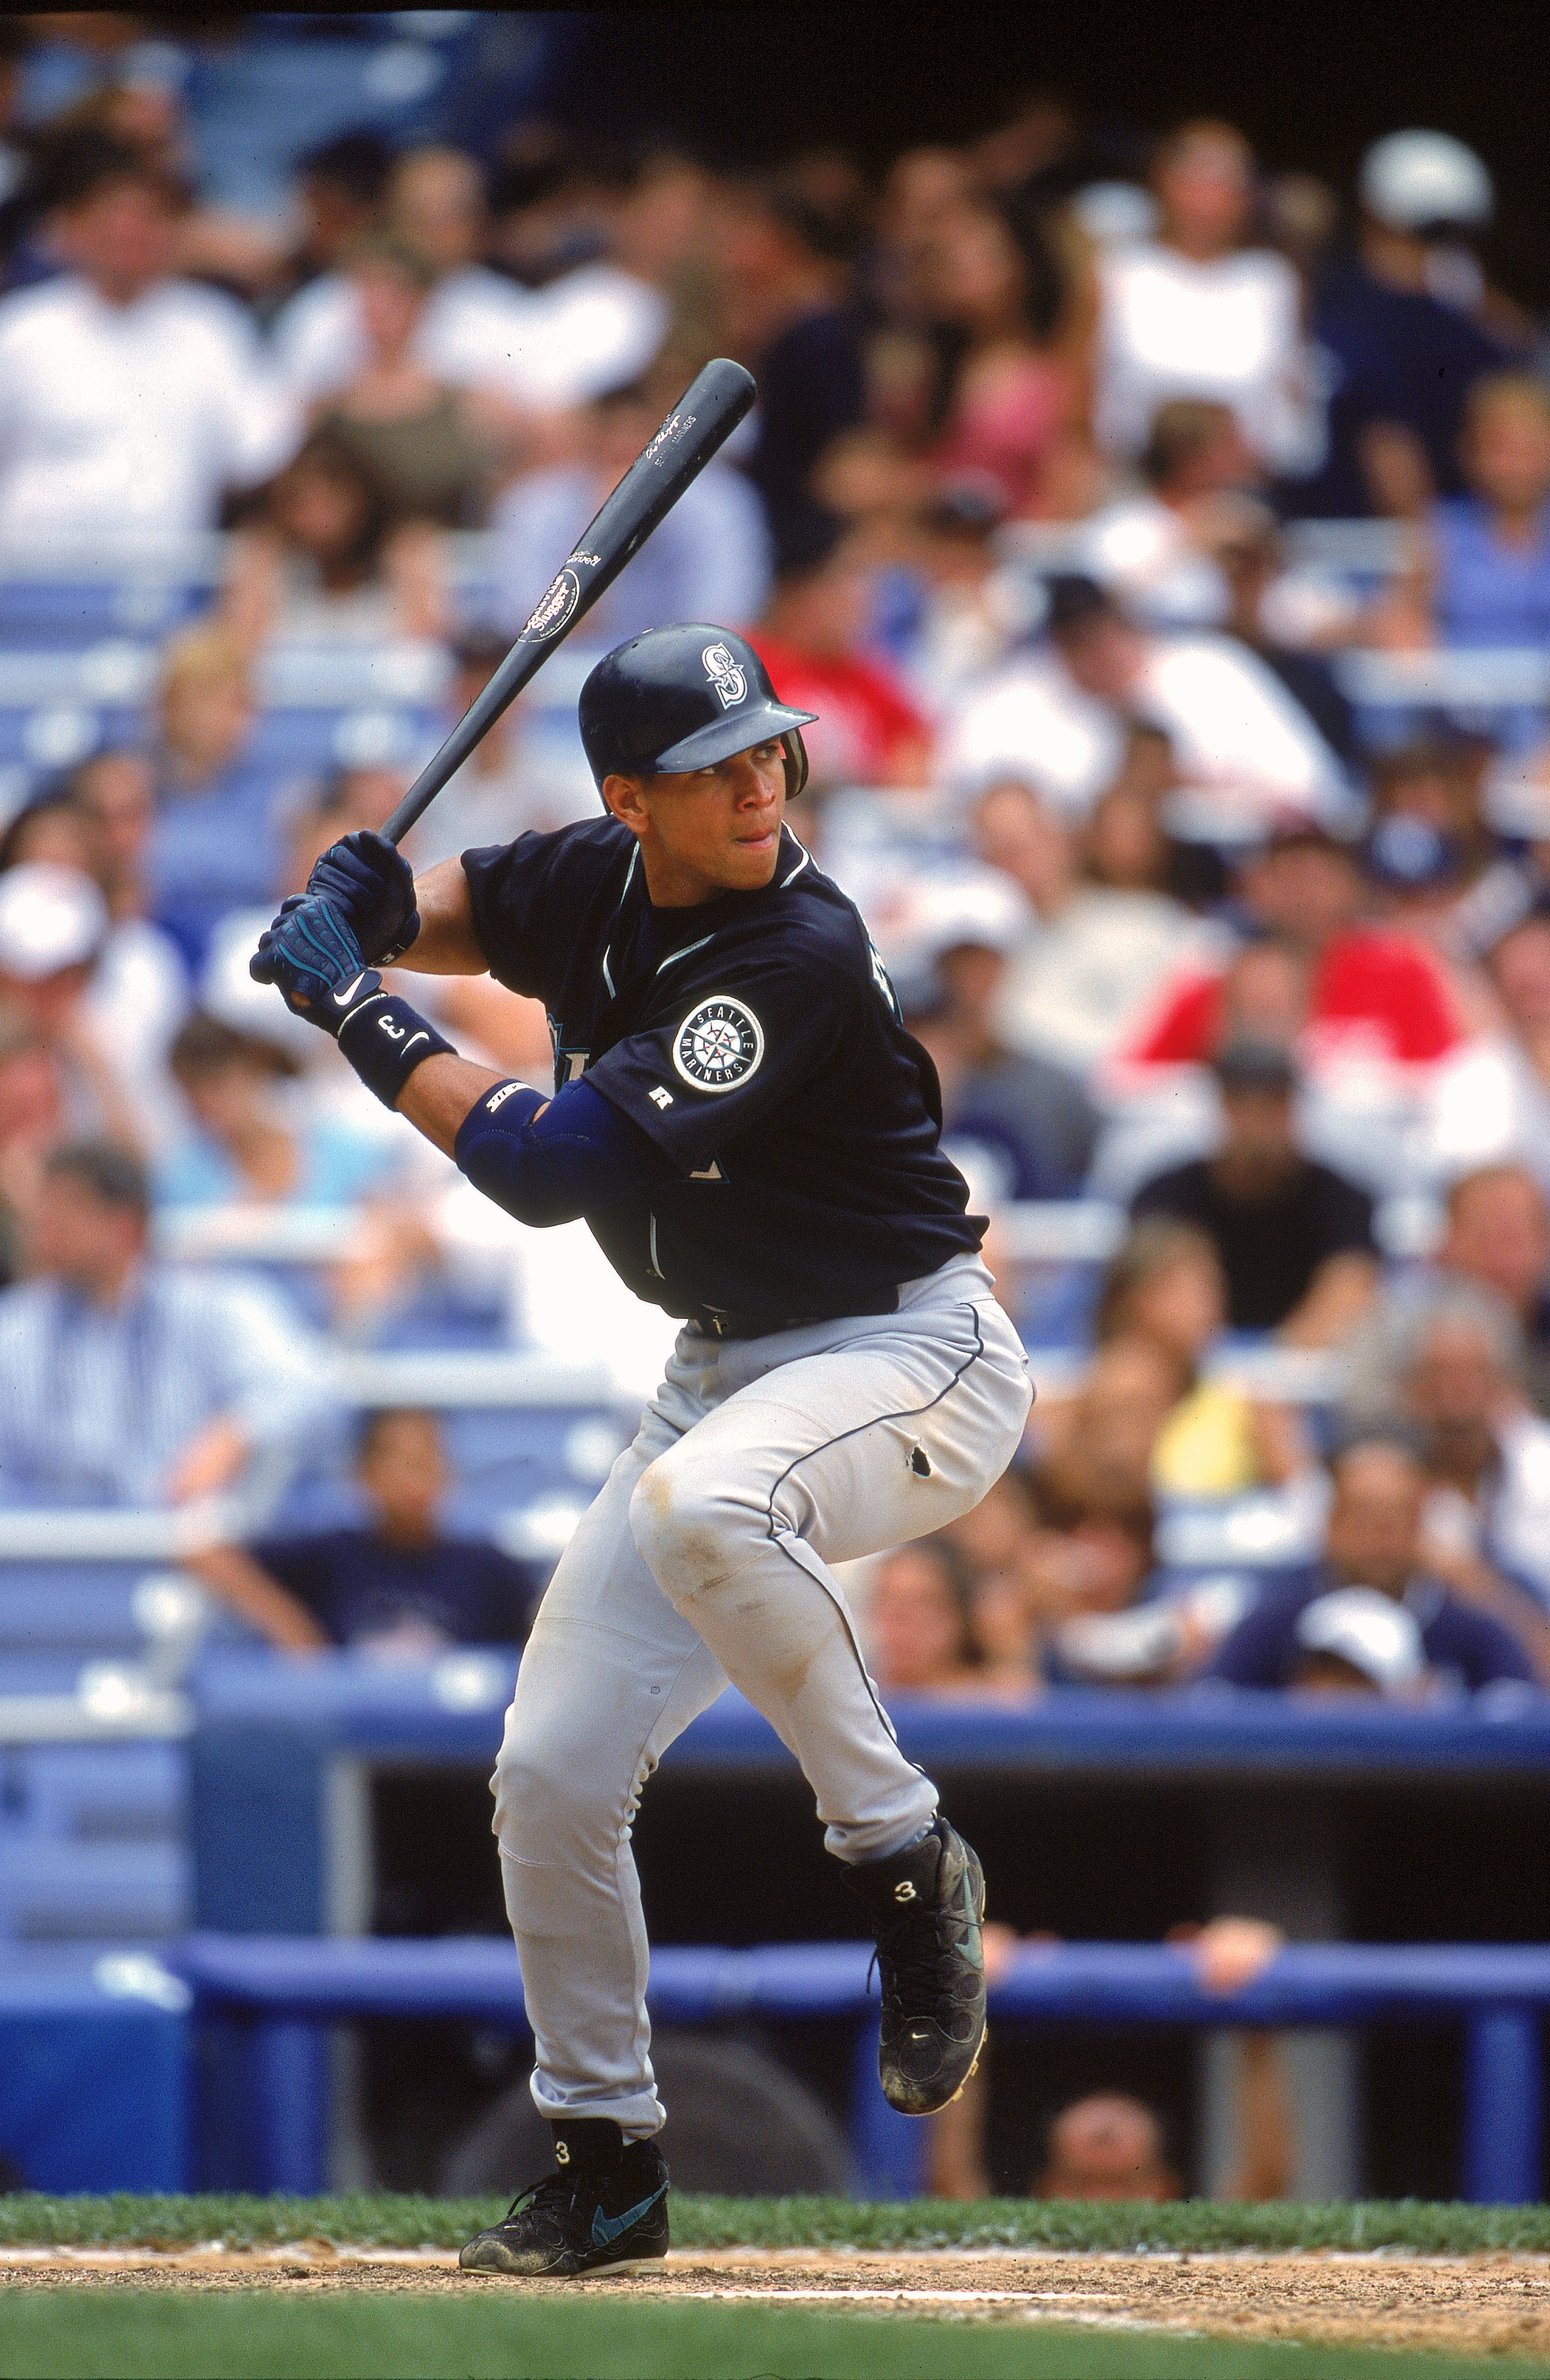 6 Aug 2000: Alex Rodriguez #3 of the Seattle Mariners in action at batduring the game against the  New York Yankees at Yankee Stadium in the Bronx, New York. The Mariners defeated the Yankees 11-1.Mandatory Credit: Jamie Squire  /Allsport